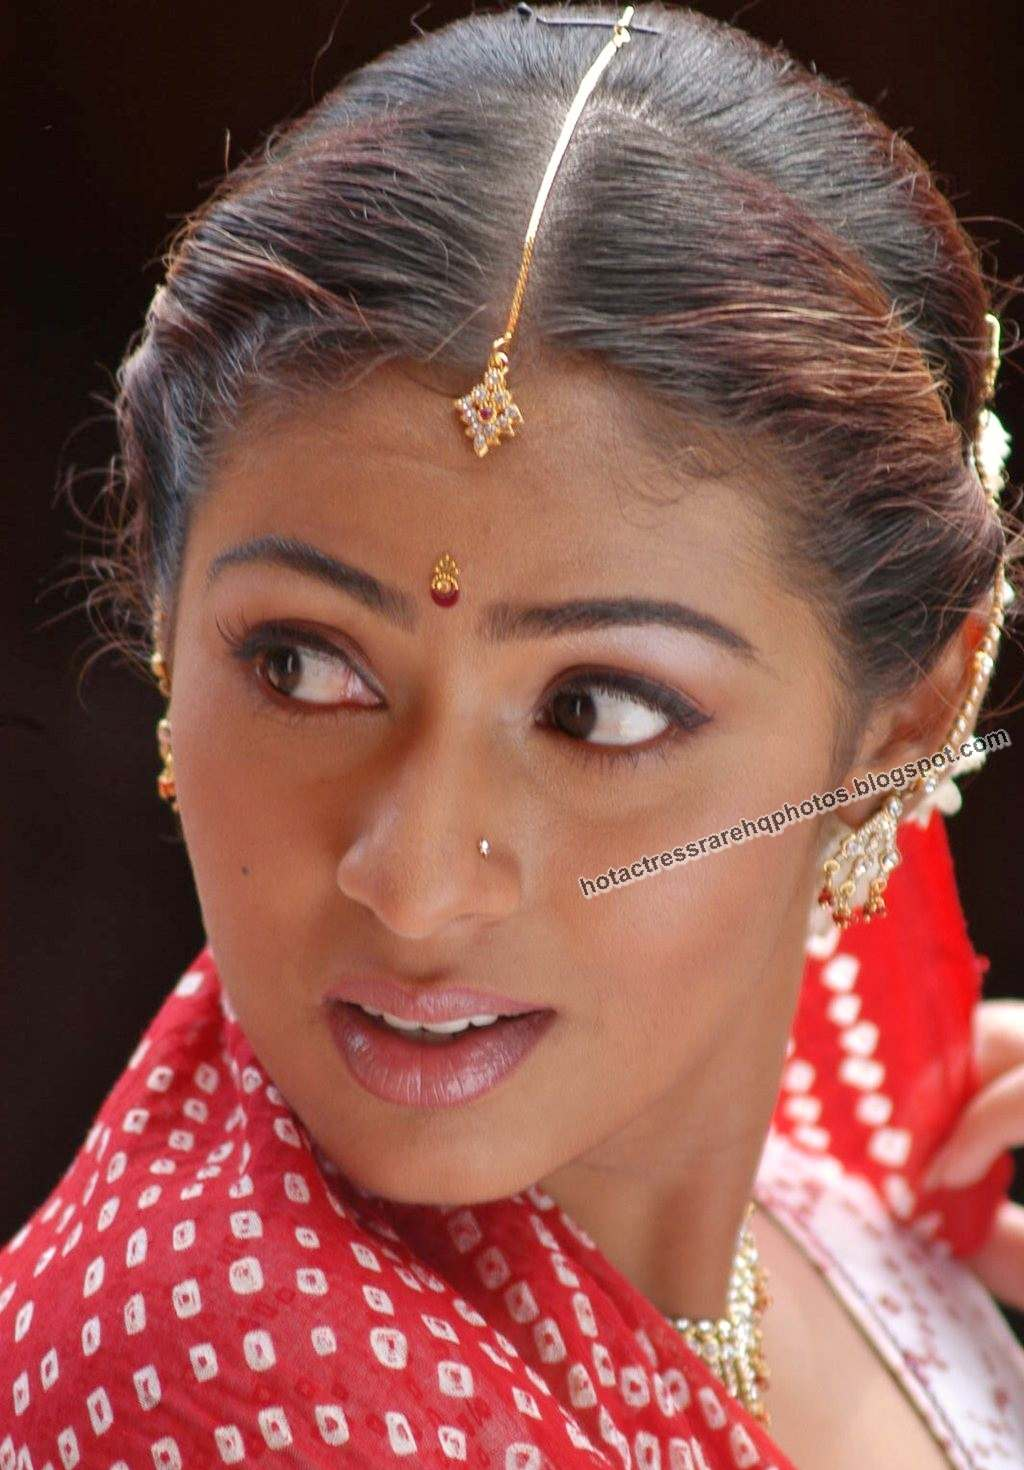 Hot Indian Actress Rare Hq Photos Hot Tamil Actress Sada -1456